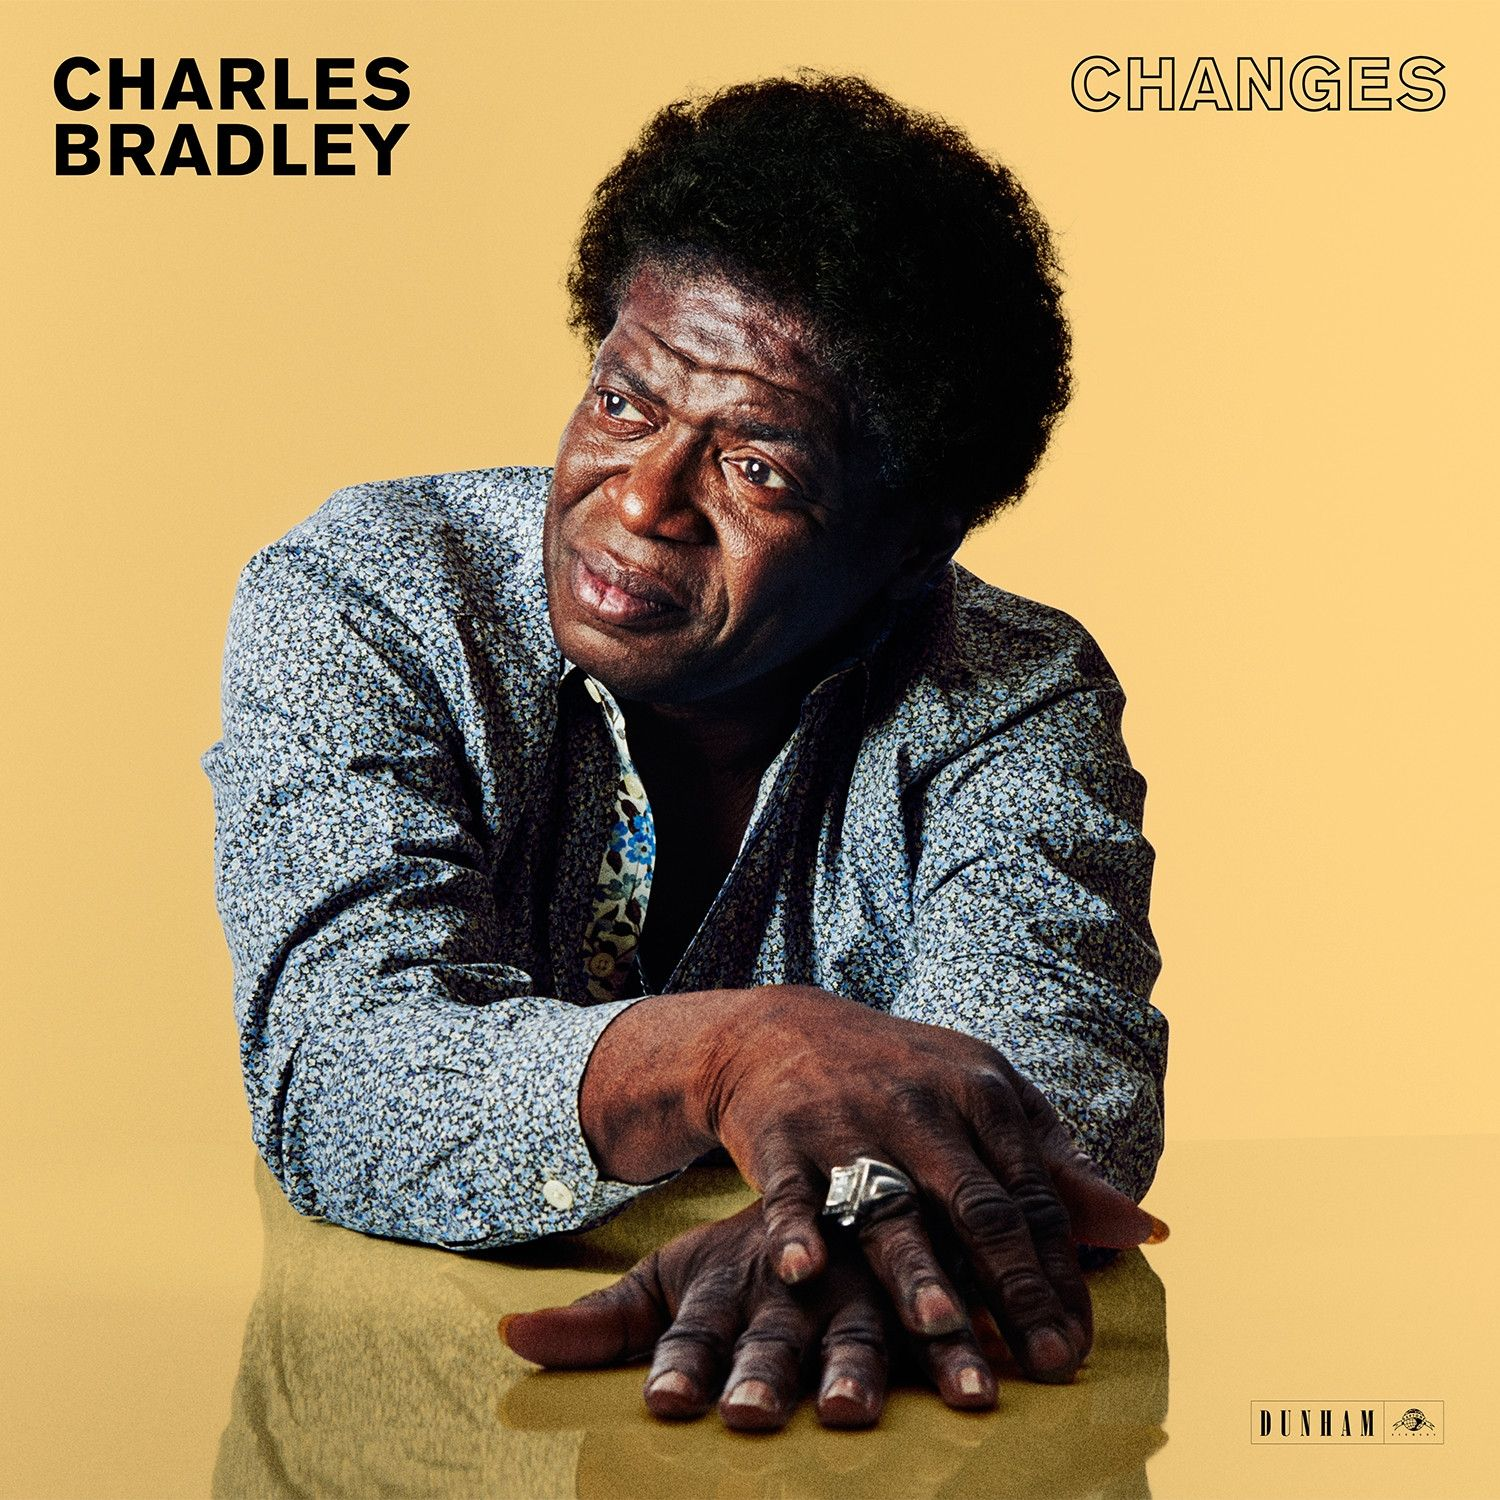 Imagem do álbum Changes do(a) artista Charles Bradley